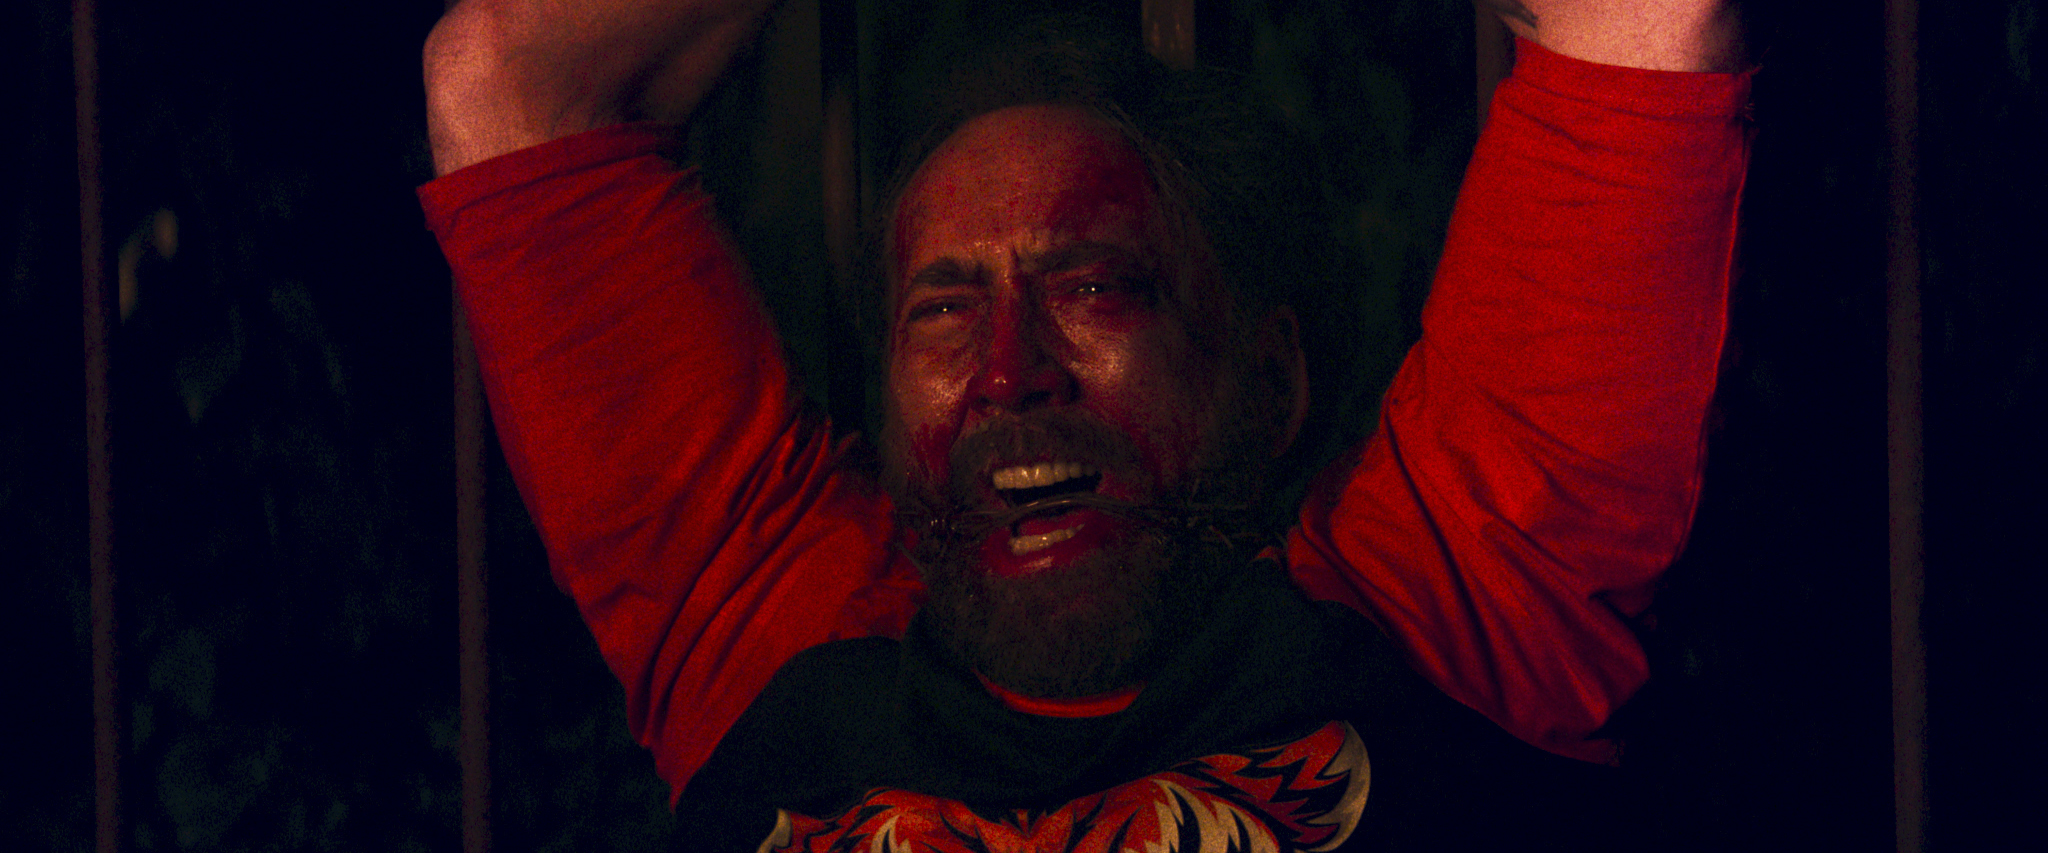 """Nicolas Cage  as Red in the action, thriller film  """" MANDY """"  an RLJE Films release. Photo courtesy of  RLJE Films ."""